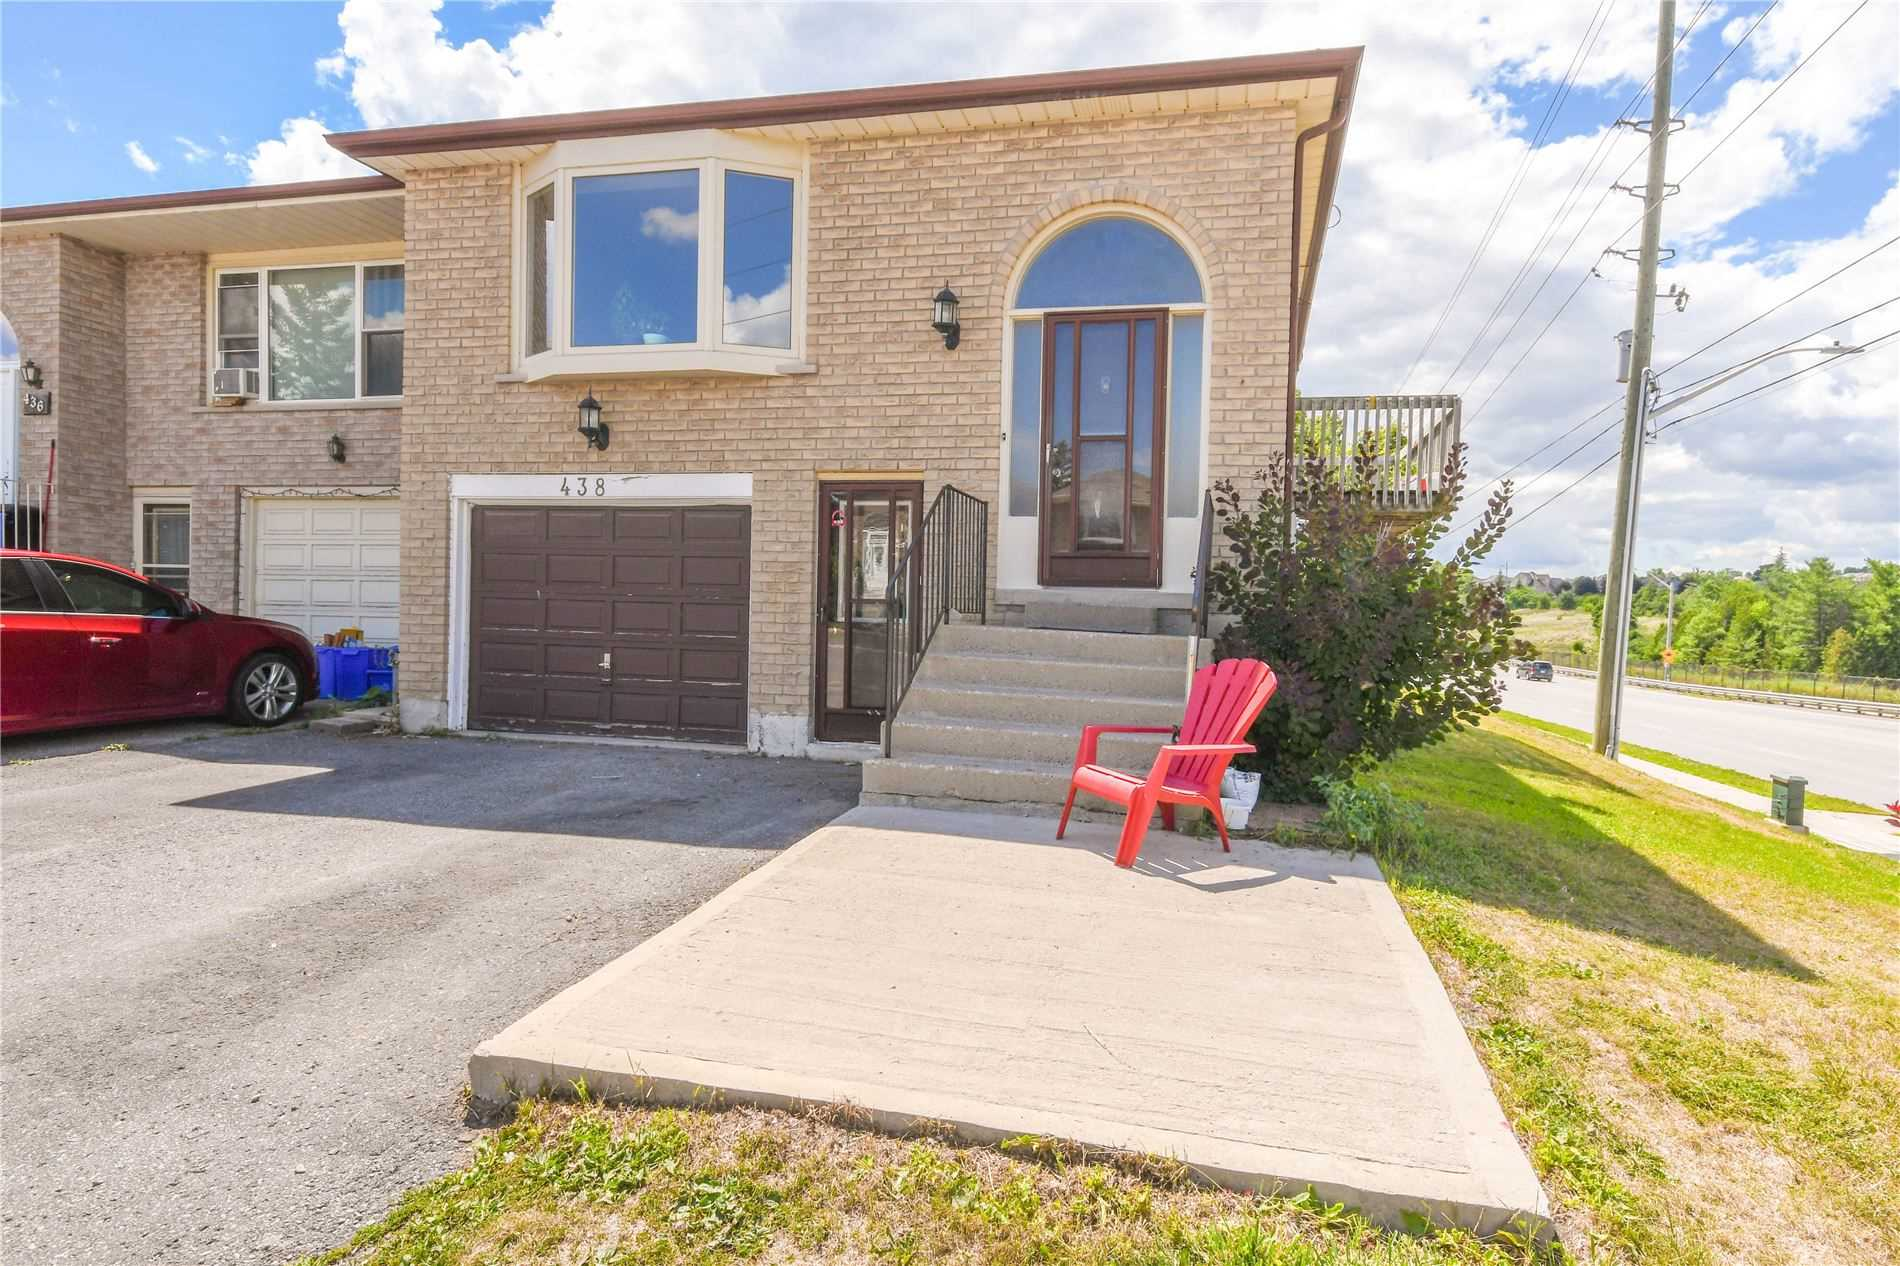 pictures of house for sale MLS: N5132556 located at 438 Colborne St, Bradford West Gwillimbury L3Z2E6